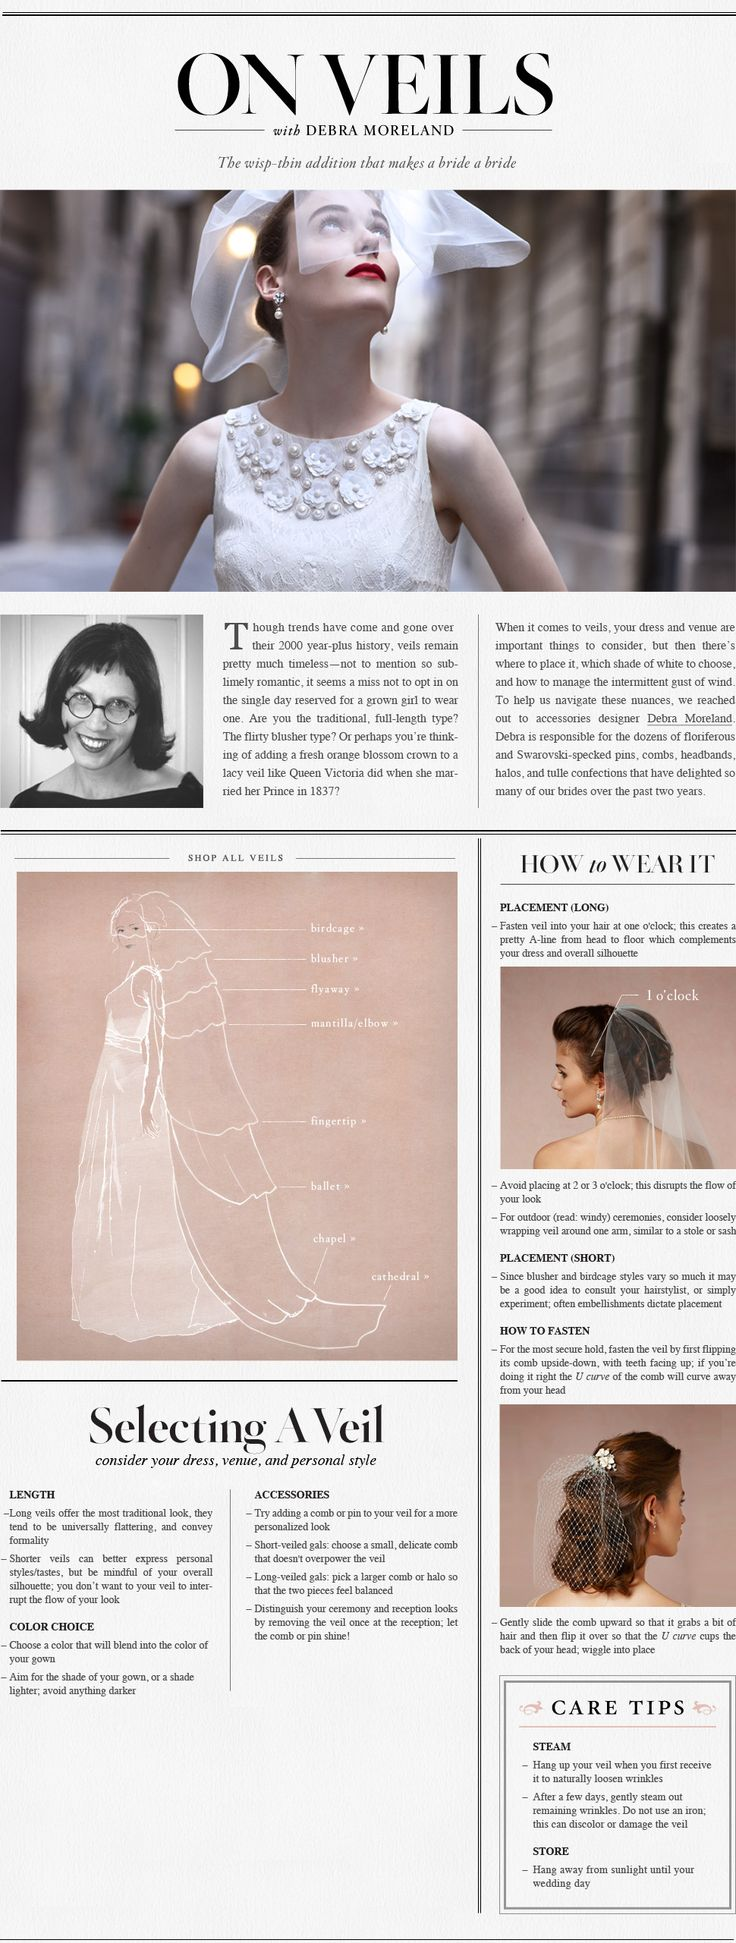 A veils guide for the modern bride. Wedding day hair. (funny how we share the same last name)